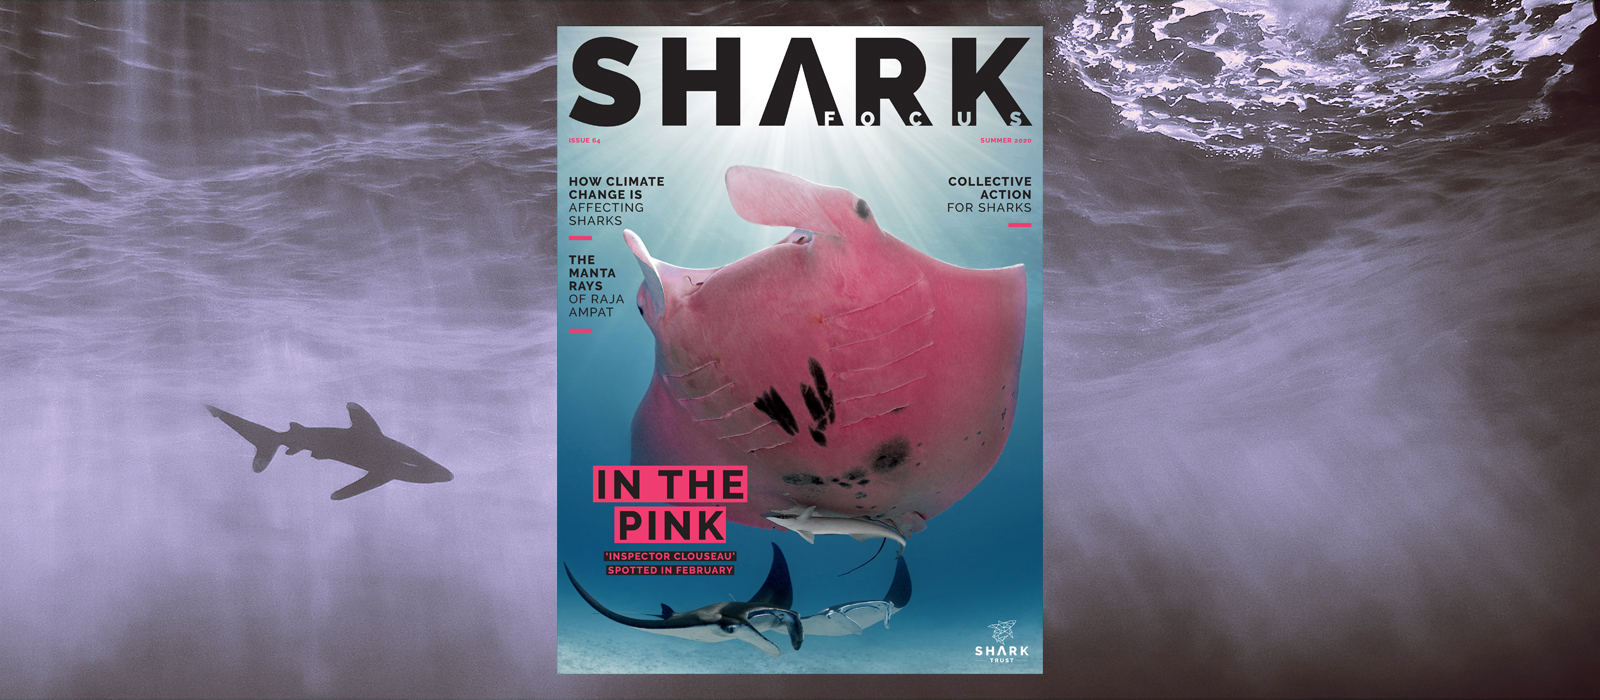 Shark Focus 64 cover features pink Manta Ray © Kristian Laine Photography. Background photo of ocean scene with shark © Magnus Lundgren.